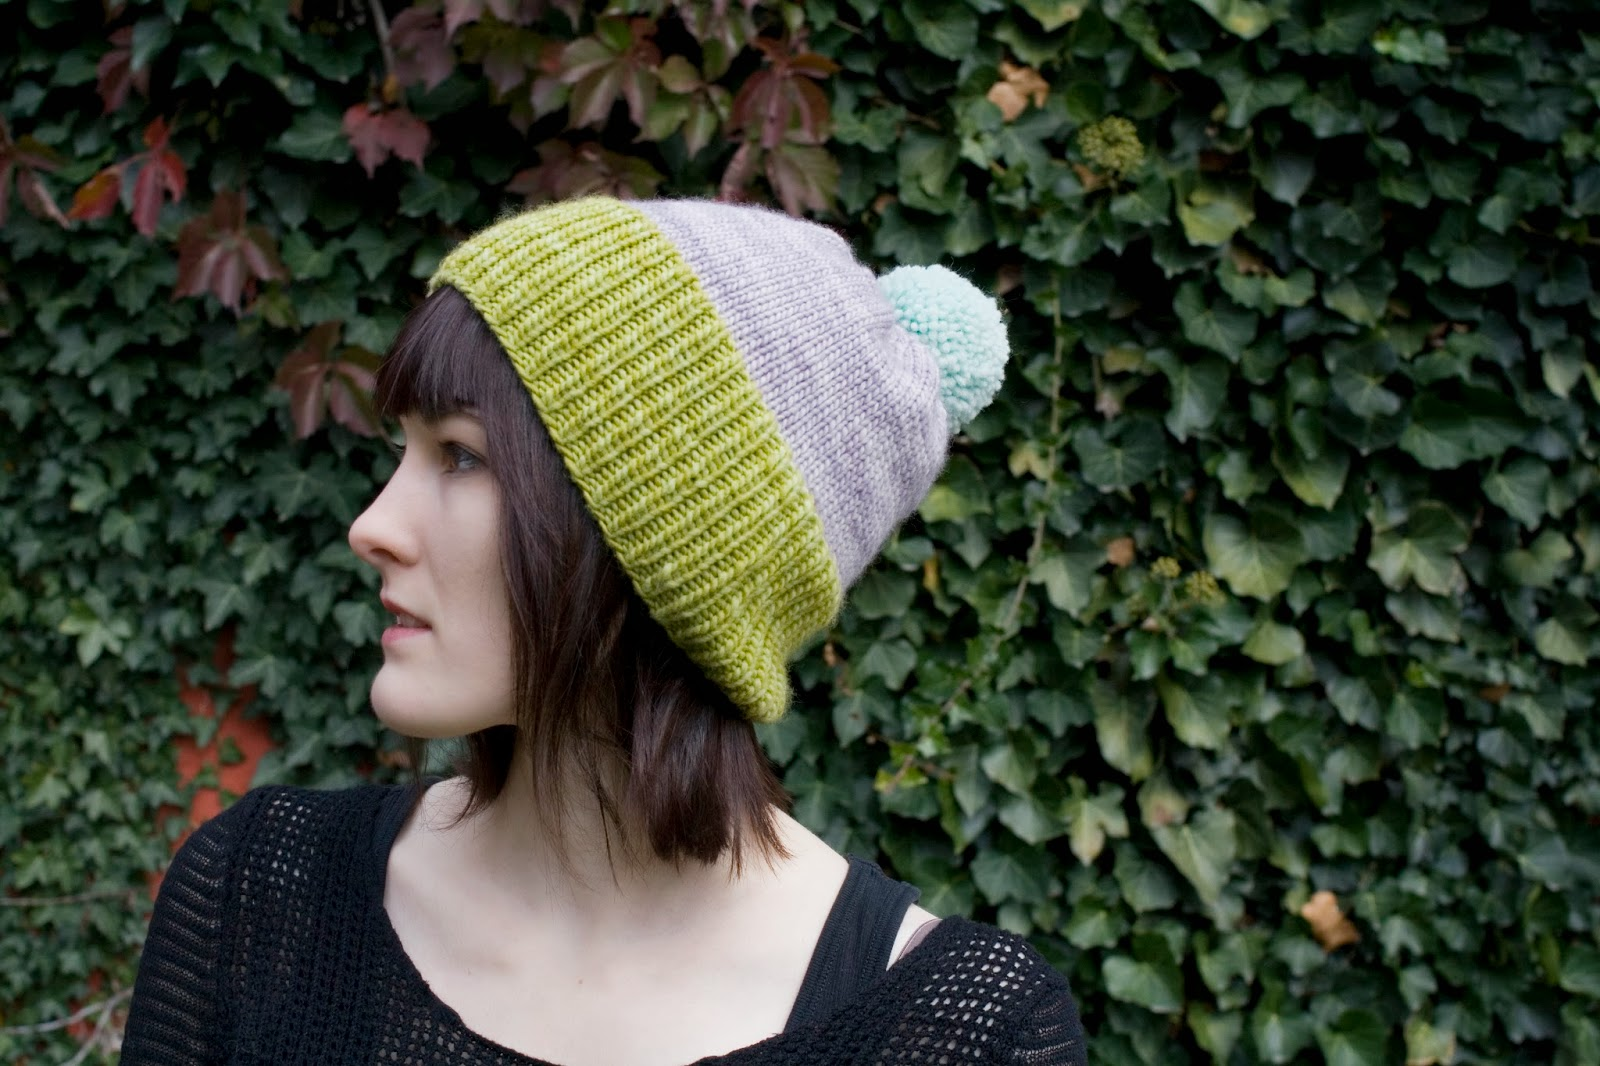 Dull Roar- Knit hat by Alex Tinsley